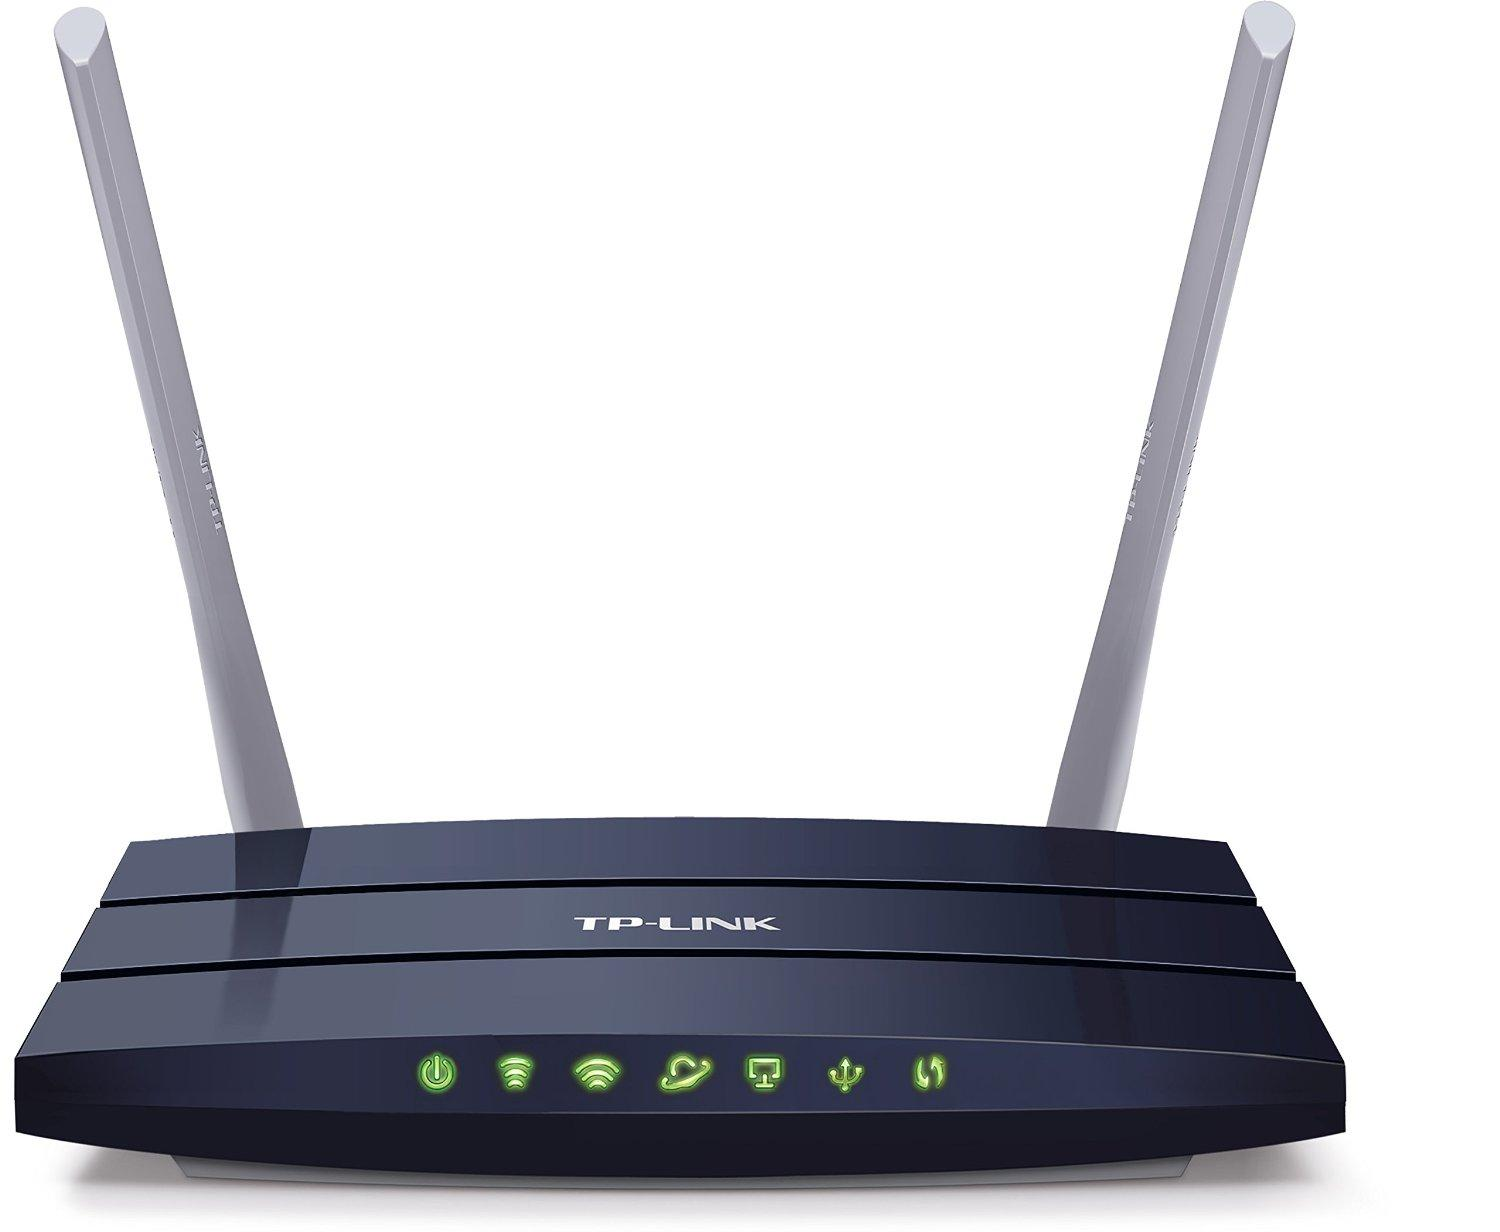 TP-LINK AC1200 Wireless Dual-Band Wi-Fi Router, 5GHz 867Mbps + 2.4GHz 300Mbps (Archer C50)